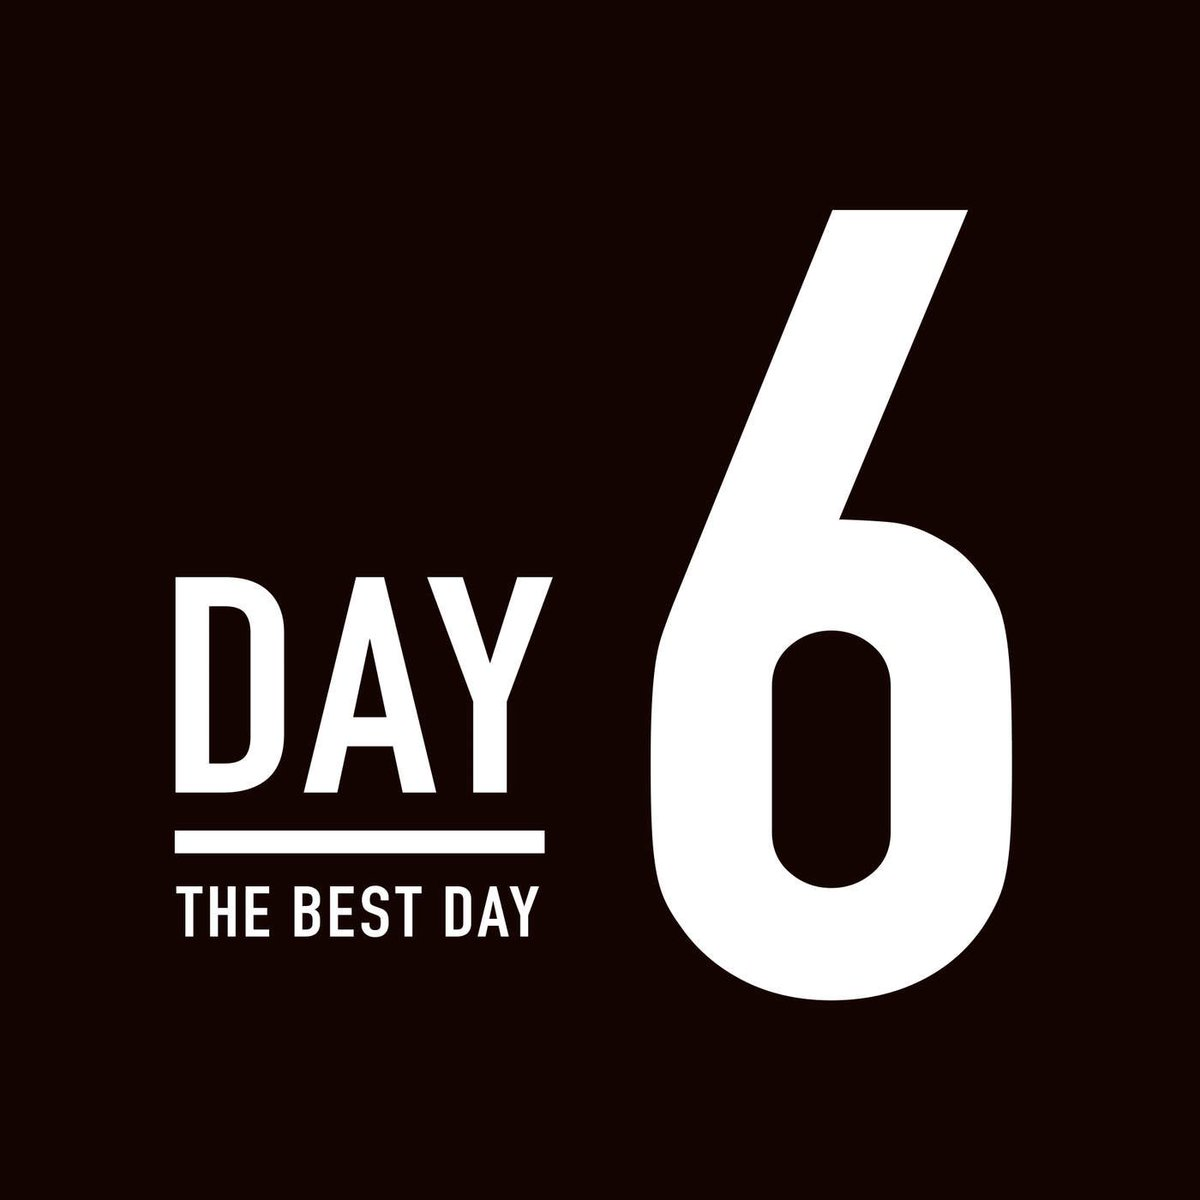 K2nblog new account on twitter single day6 the best day single day6 the best day japanese itunes plus aac m4a k2nblog track list 01 congratulations english version 02 i wait japanese version 03 stopboris Gallery